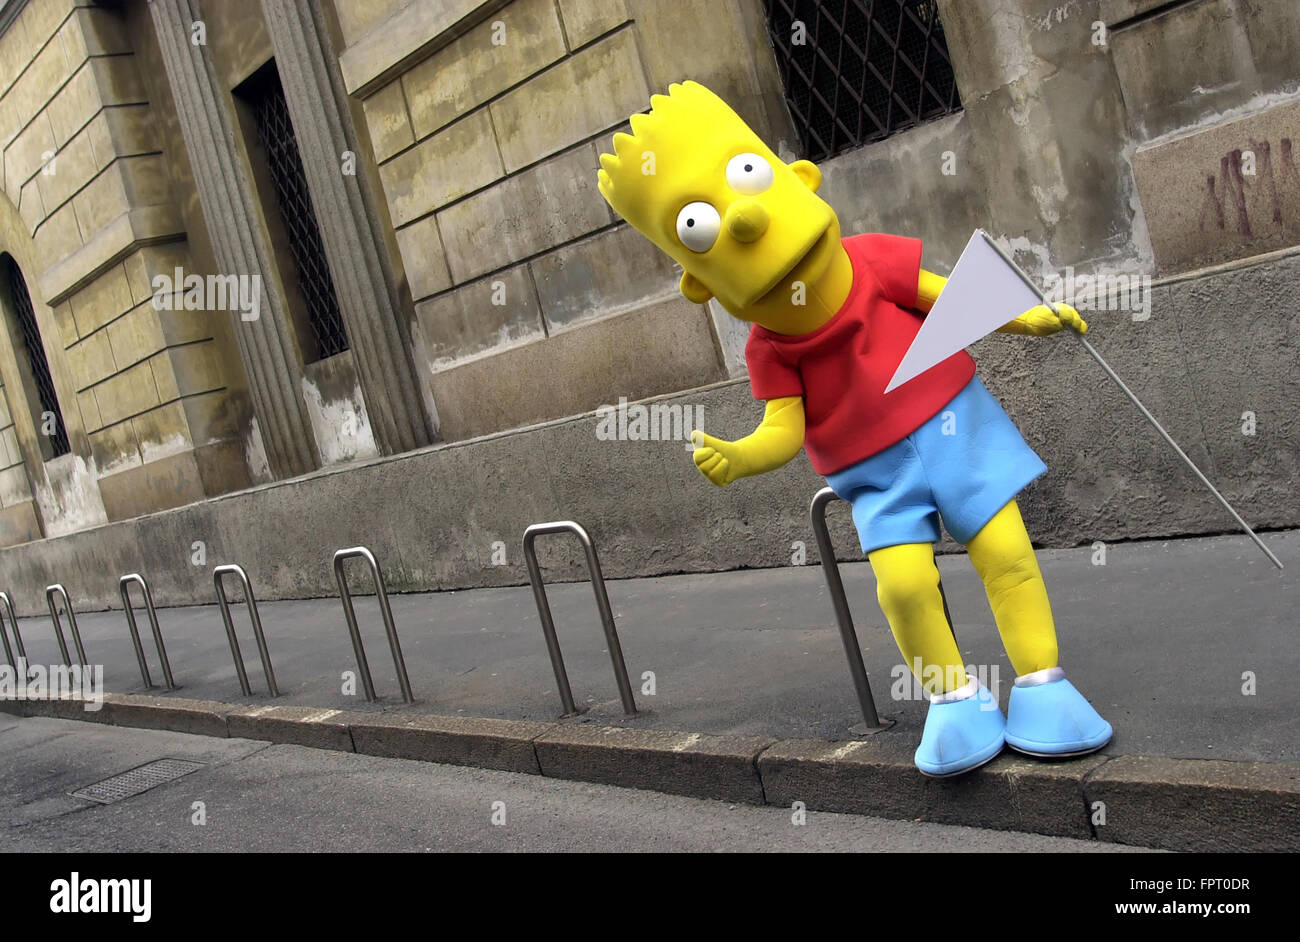 Life size Bart Simpson cartoon character leaning on bike rack with blank triangular flag in hand - Stock Image